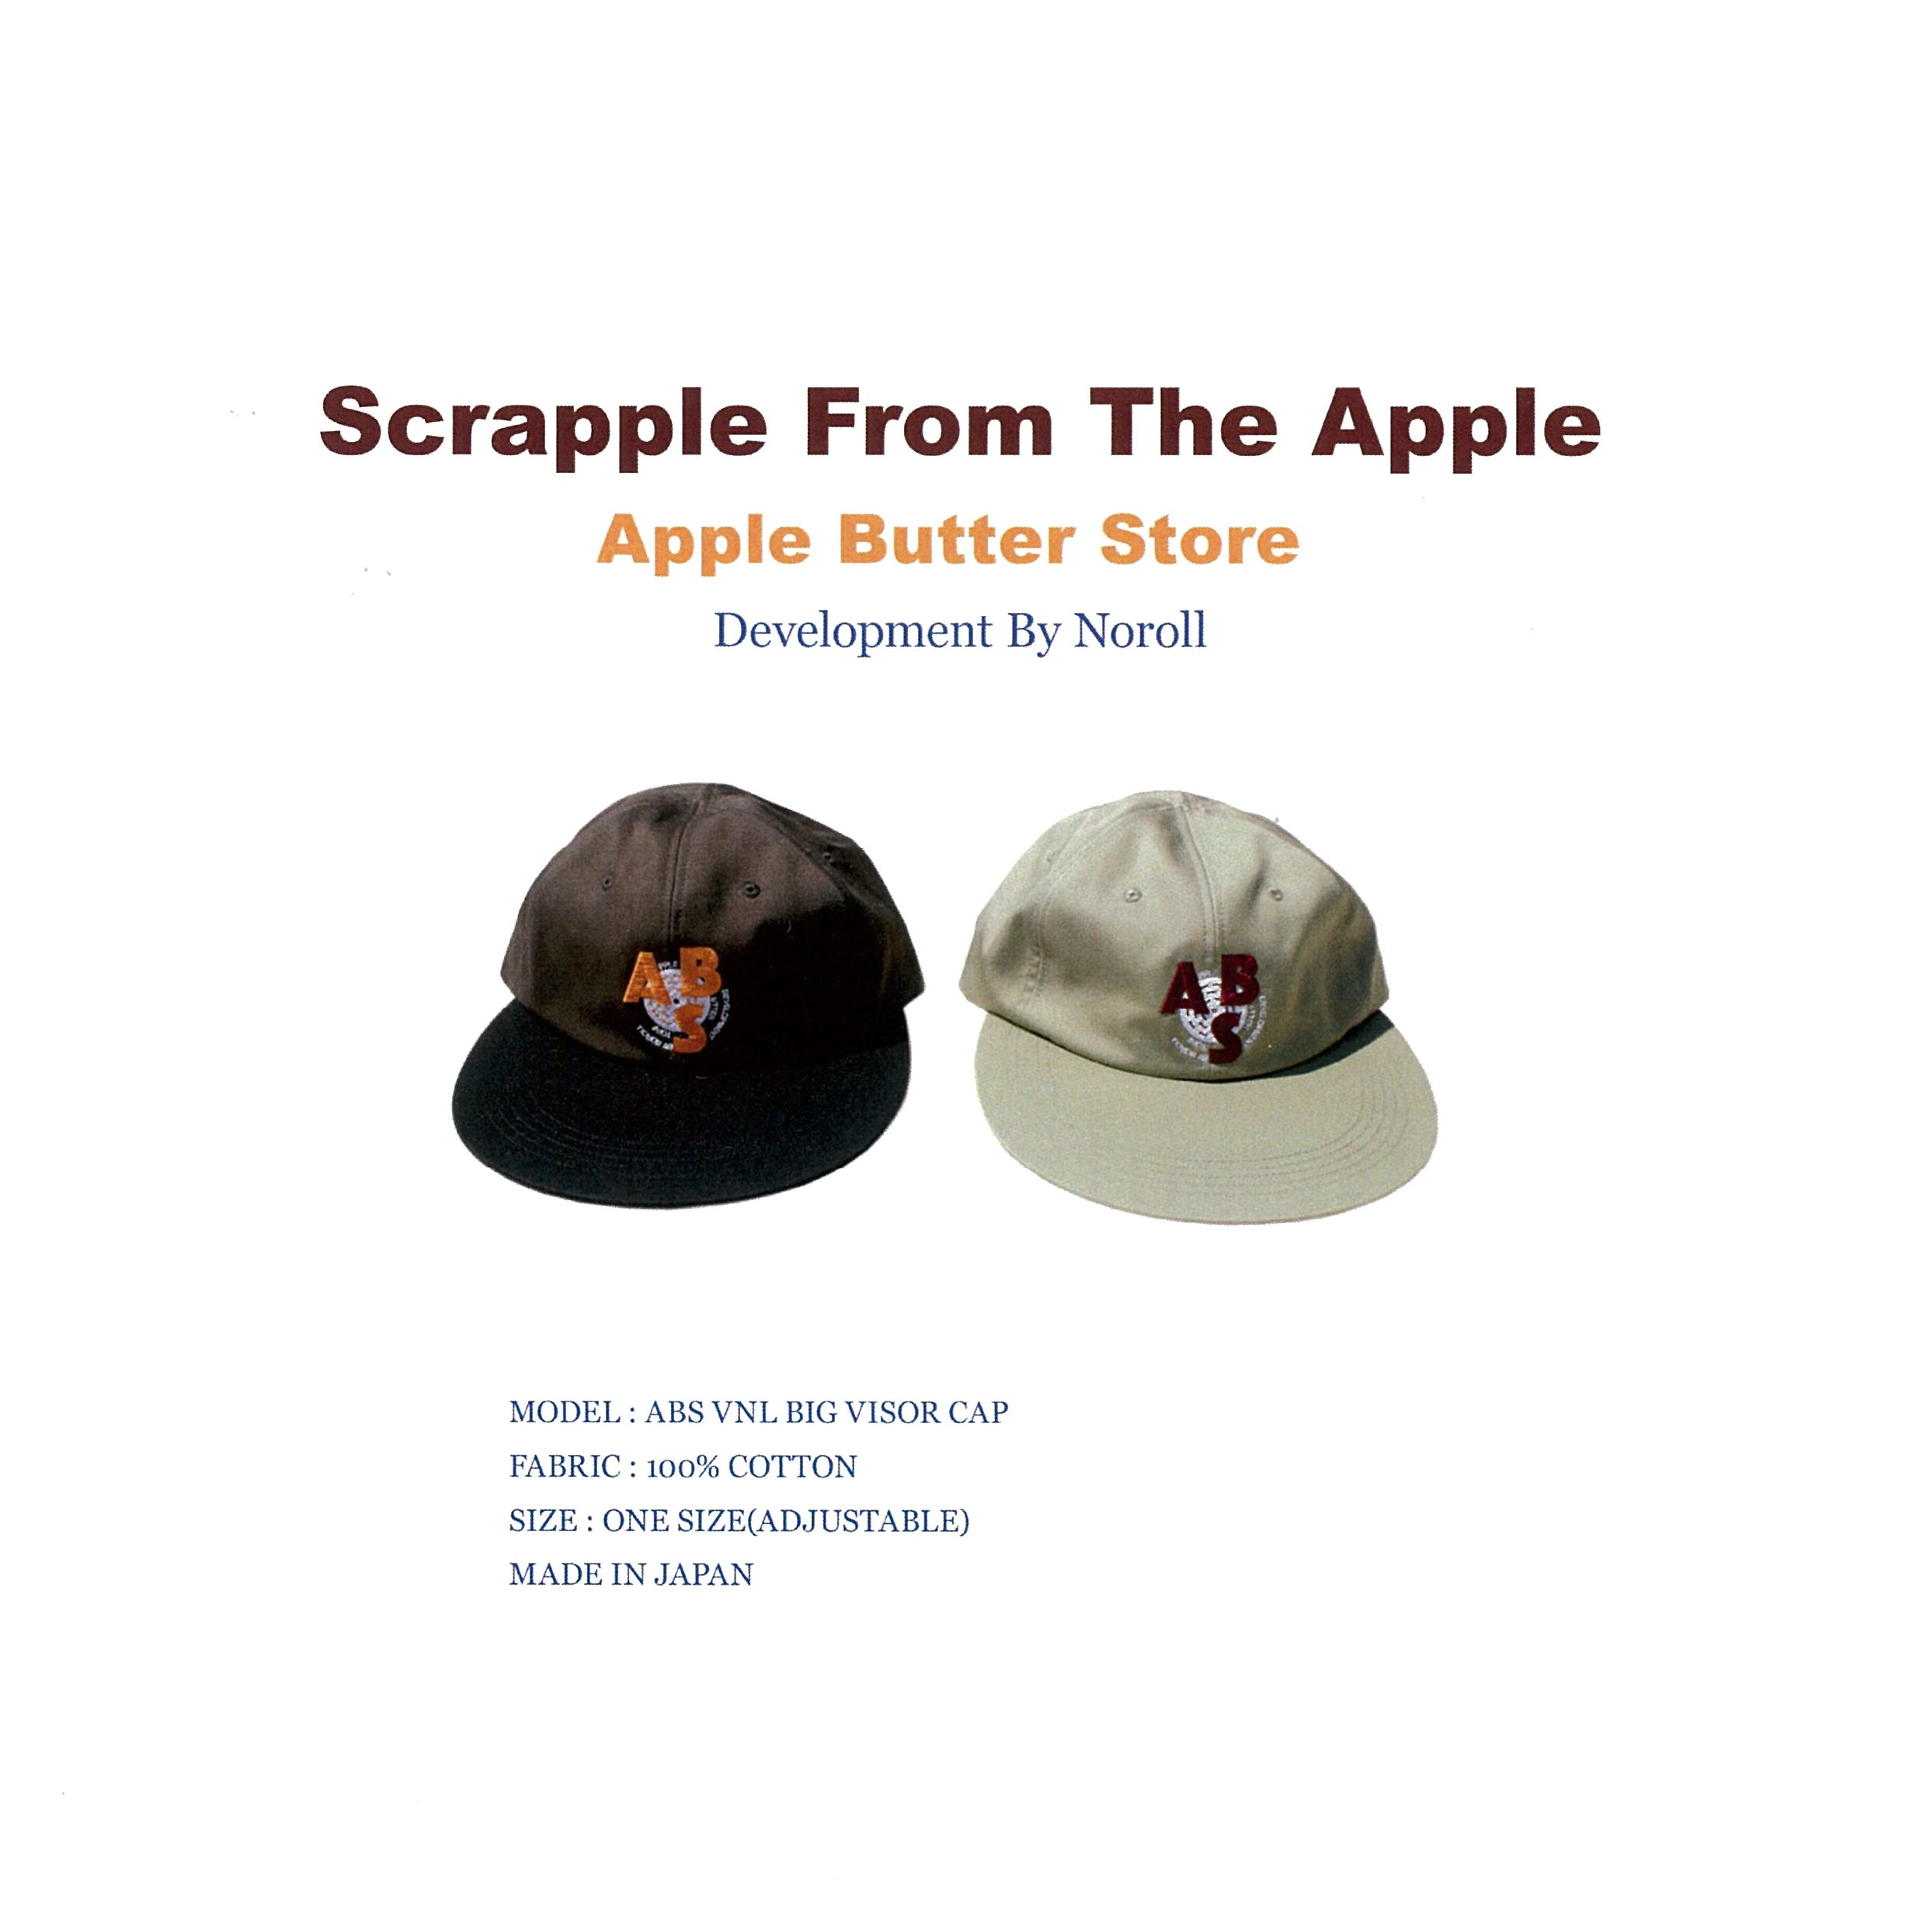 Scrapple From The Apple